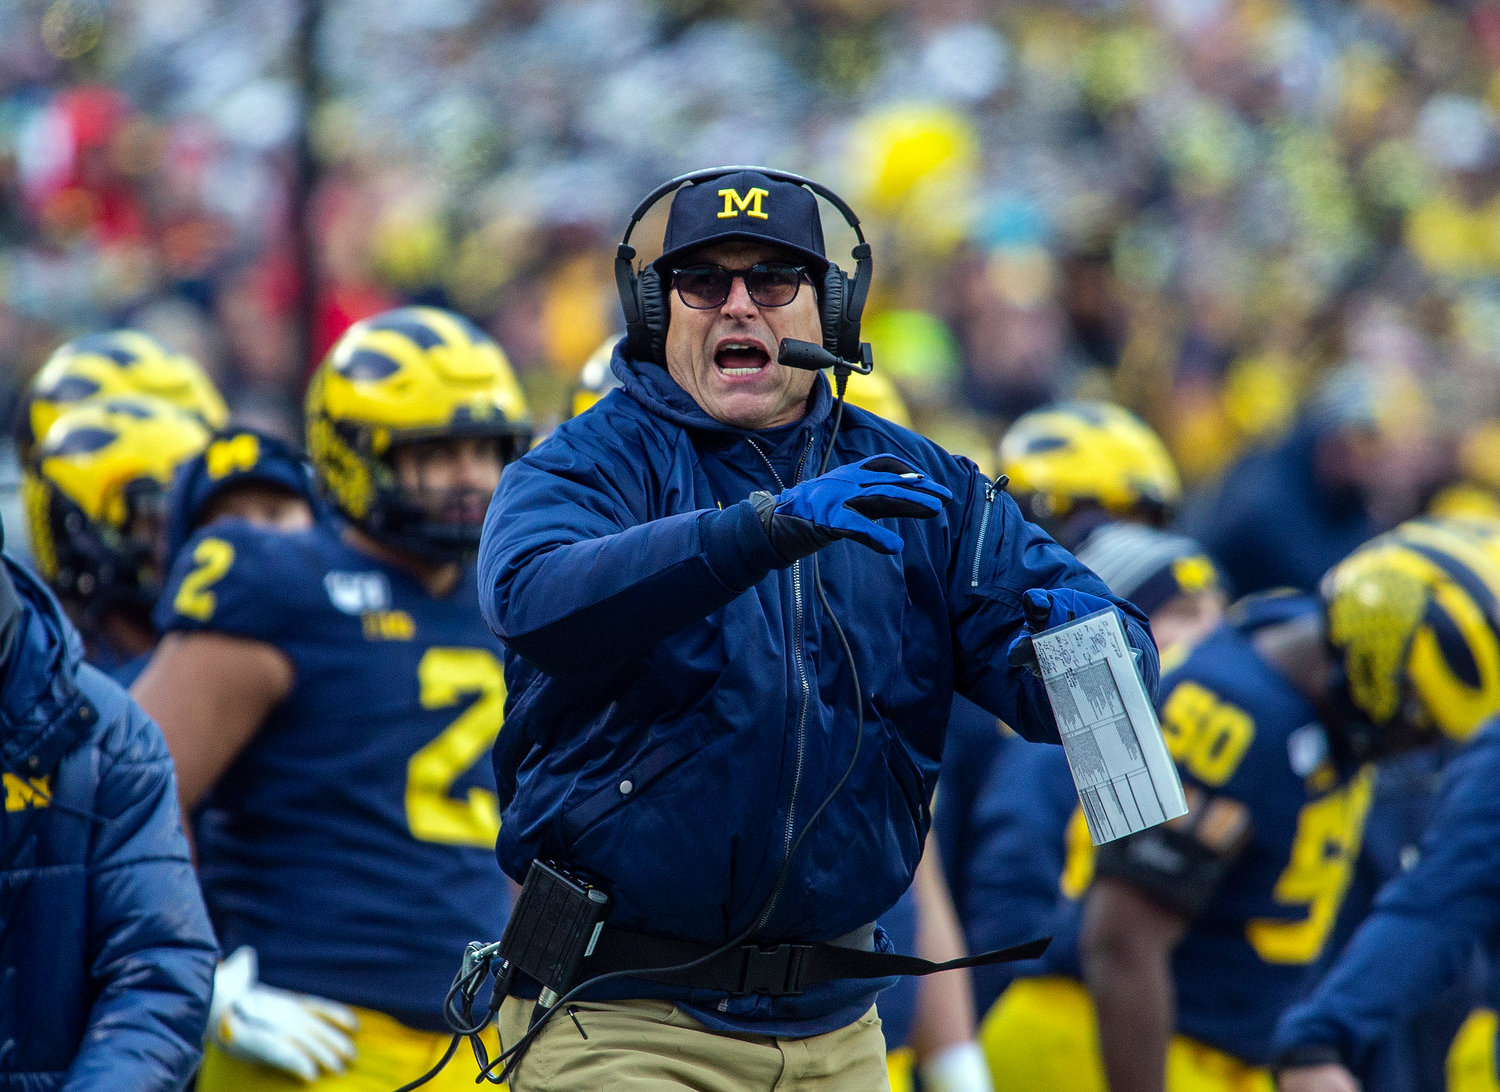 Michigan head coach Jim Harbaugh calls a timeout from the sidelines in the third quarter of an NCAA college football game against Ohio State in Ann Arbor, Mich., Saturday, Nov. 30, 2019. Ohio State won 56-27. (AP Photo/Tony Ding)